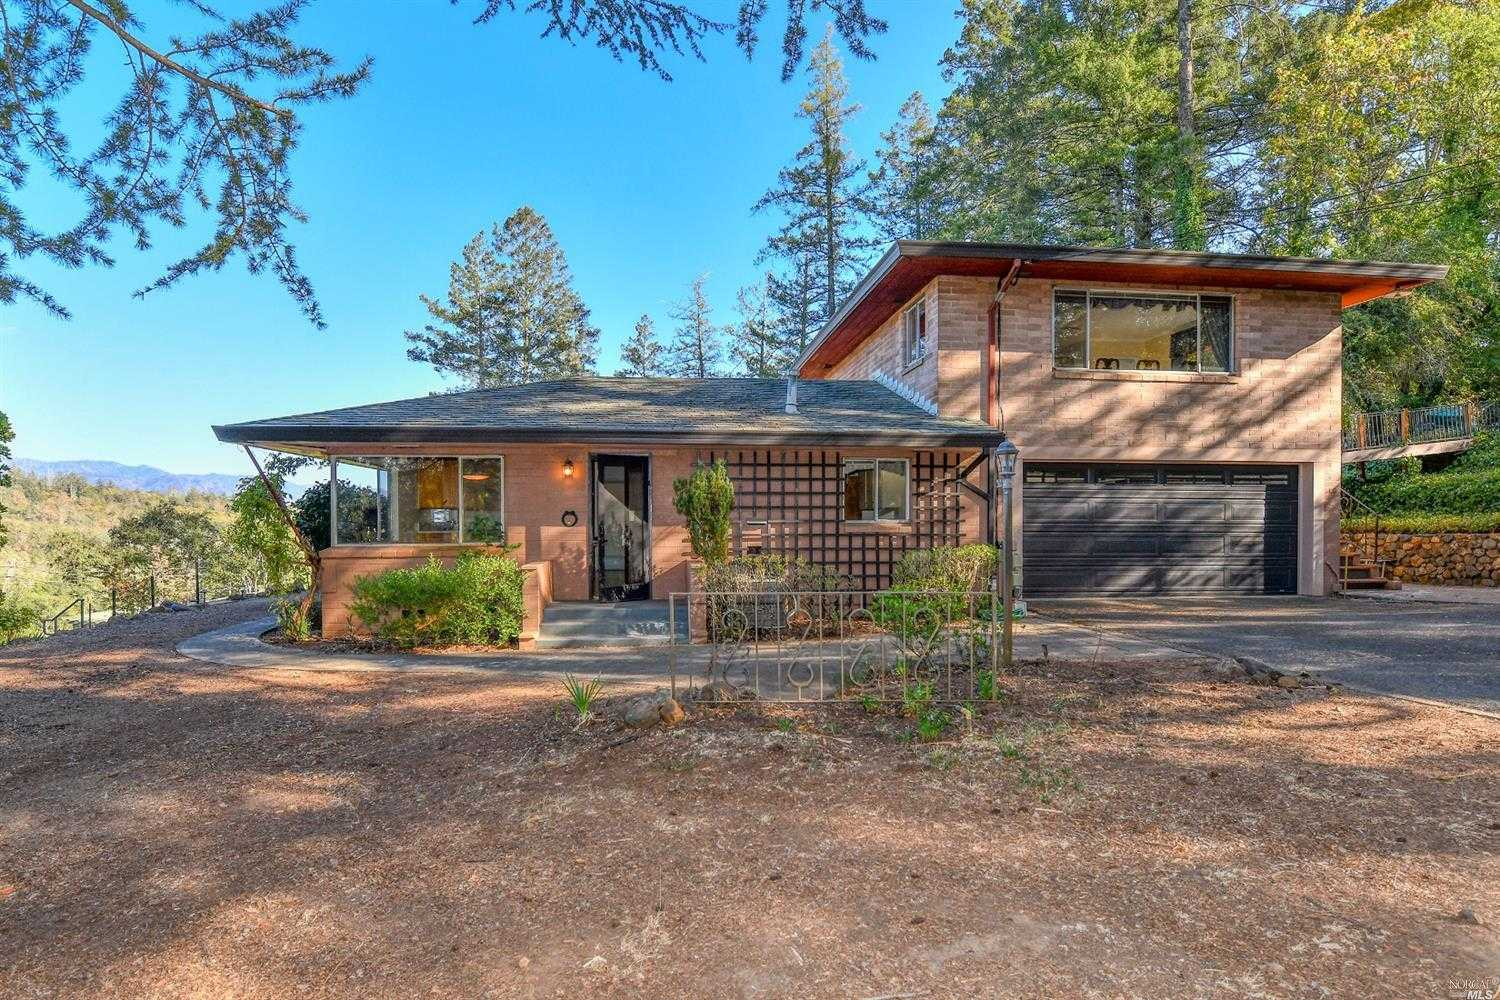 $1,375,000 - 2Br/3Ba -  for Sale in Calistoga